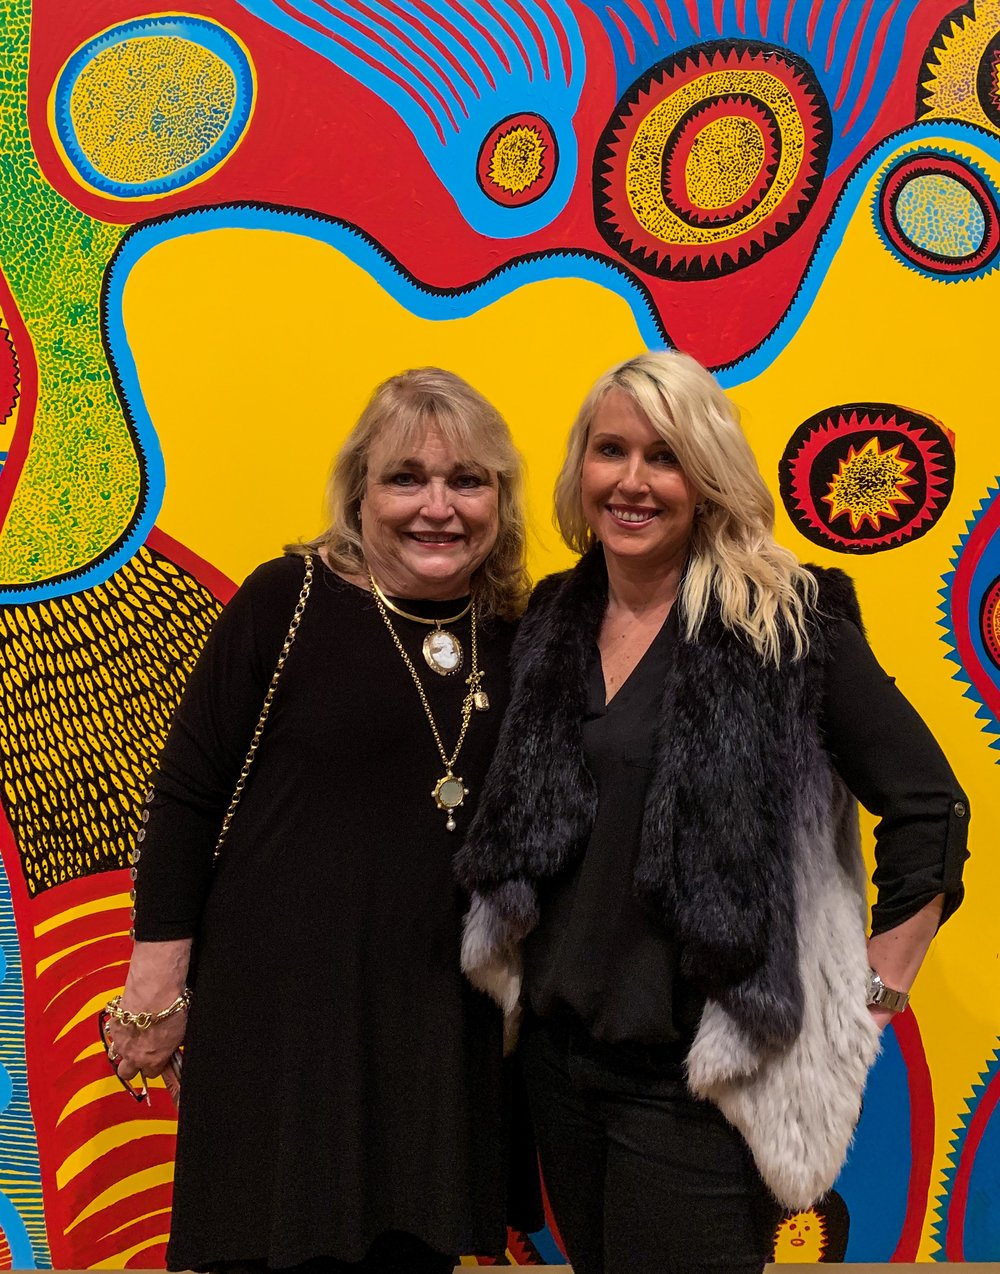 We Had To Snap A Mother Daughter Picture In Front Of This Brilliant Work